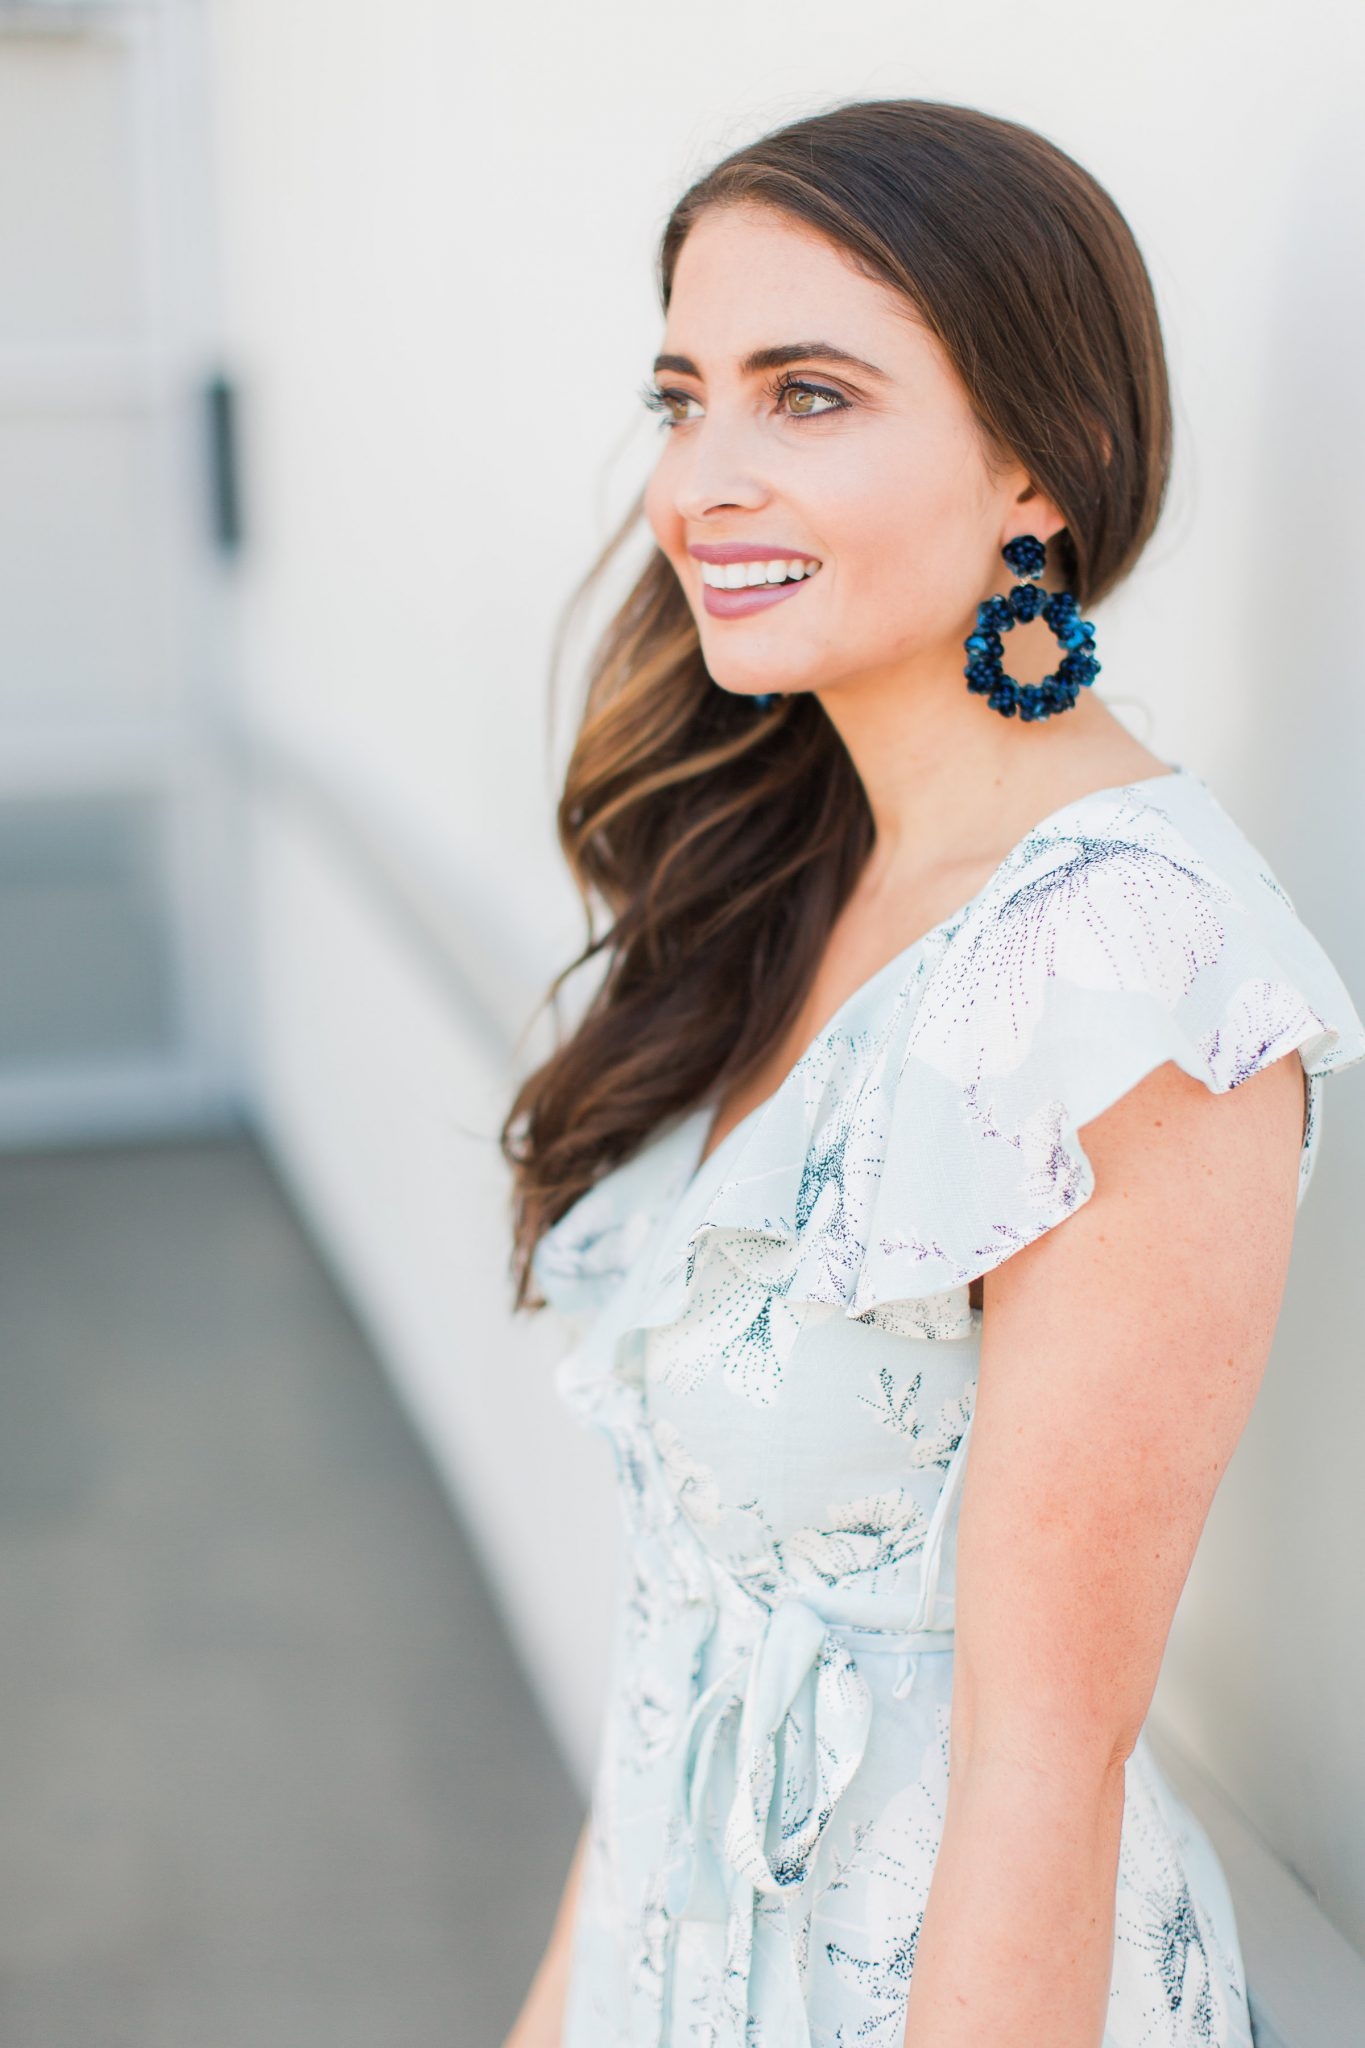 Blue floral dress and navy earrings - Baublebar Earrings Sale Favorites by popular Orange County fashion blogger Maxie Elle